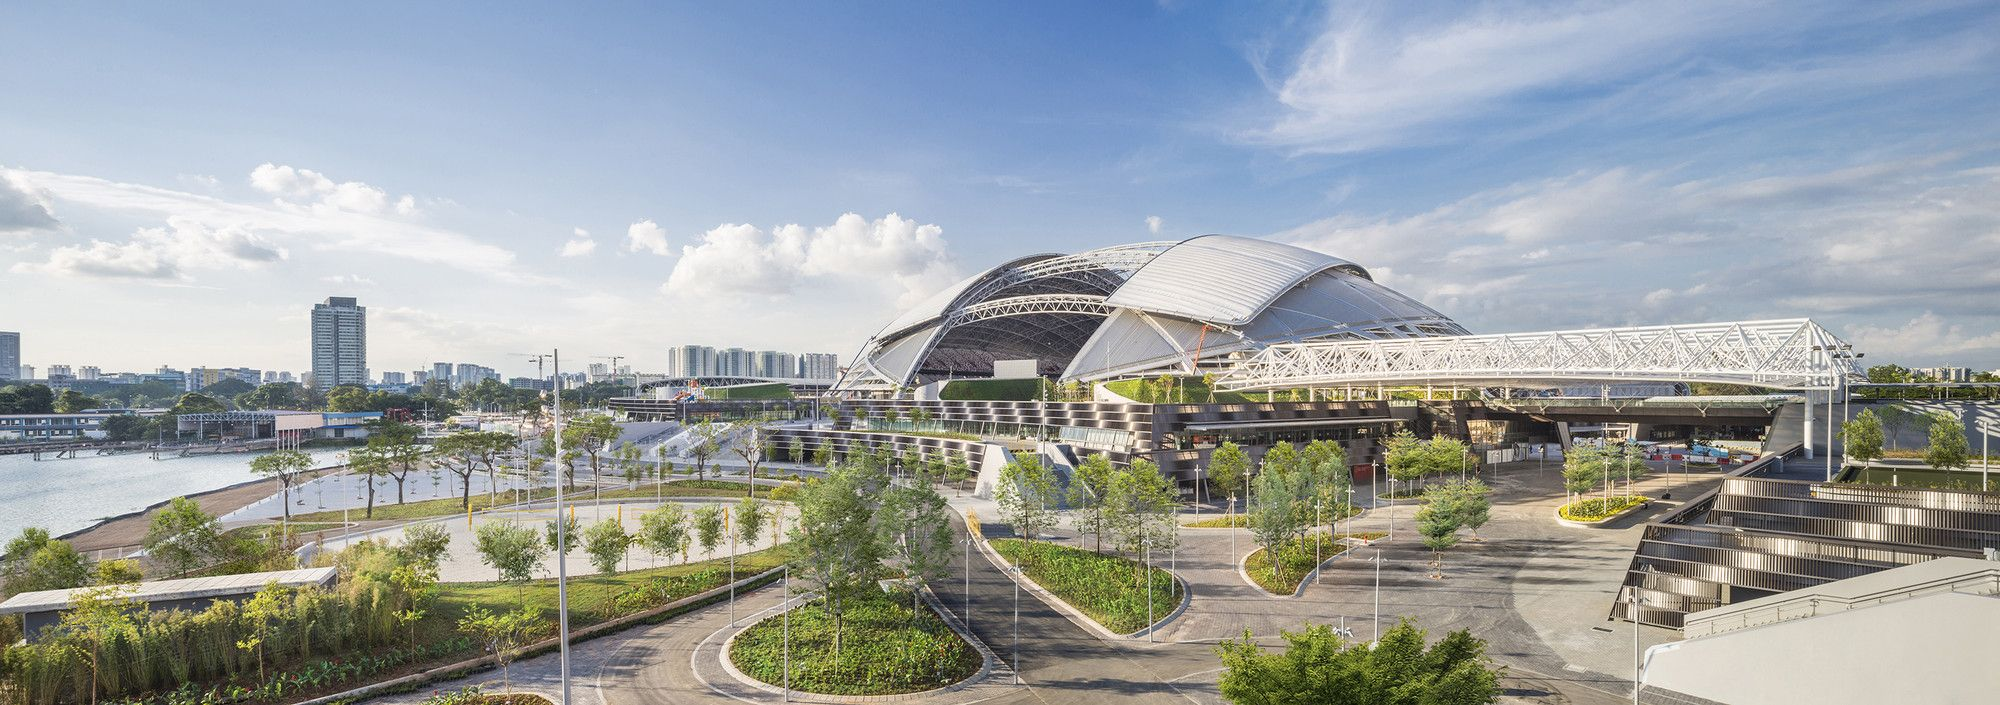 Gallery Of Singapore Sportshub Dparchitects 23 Dp Architects Singapore Dome Building